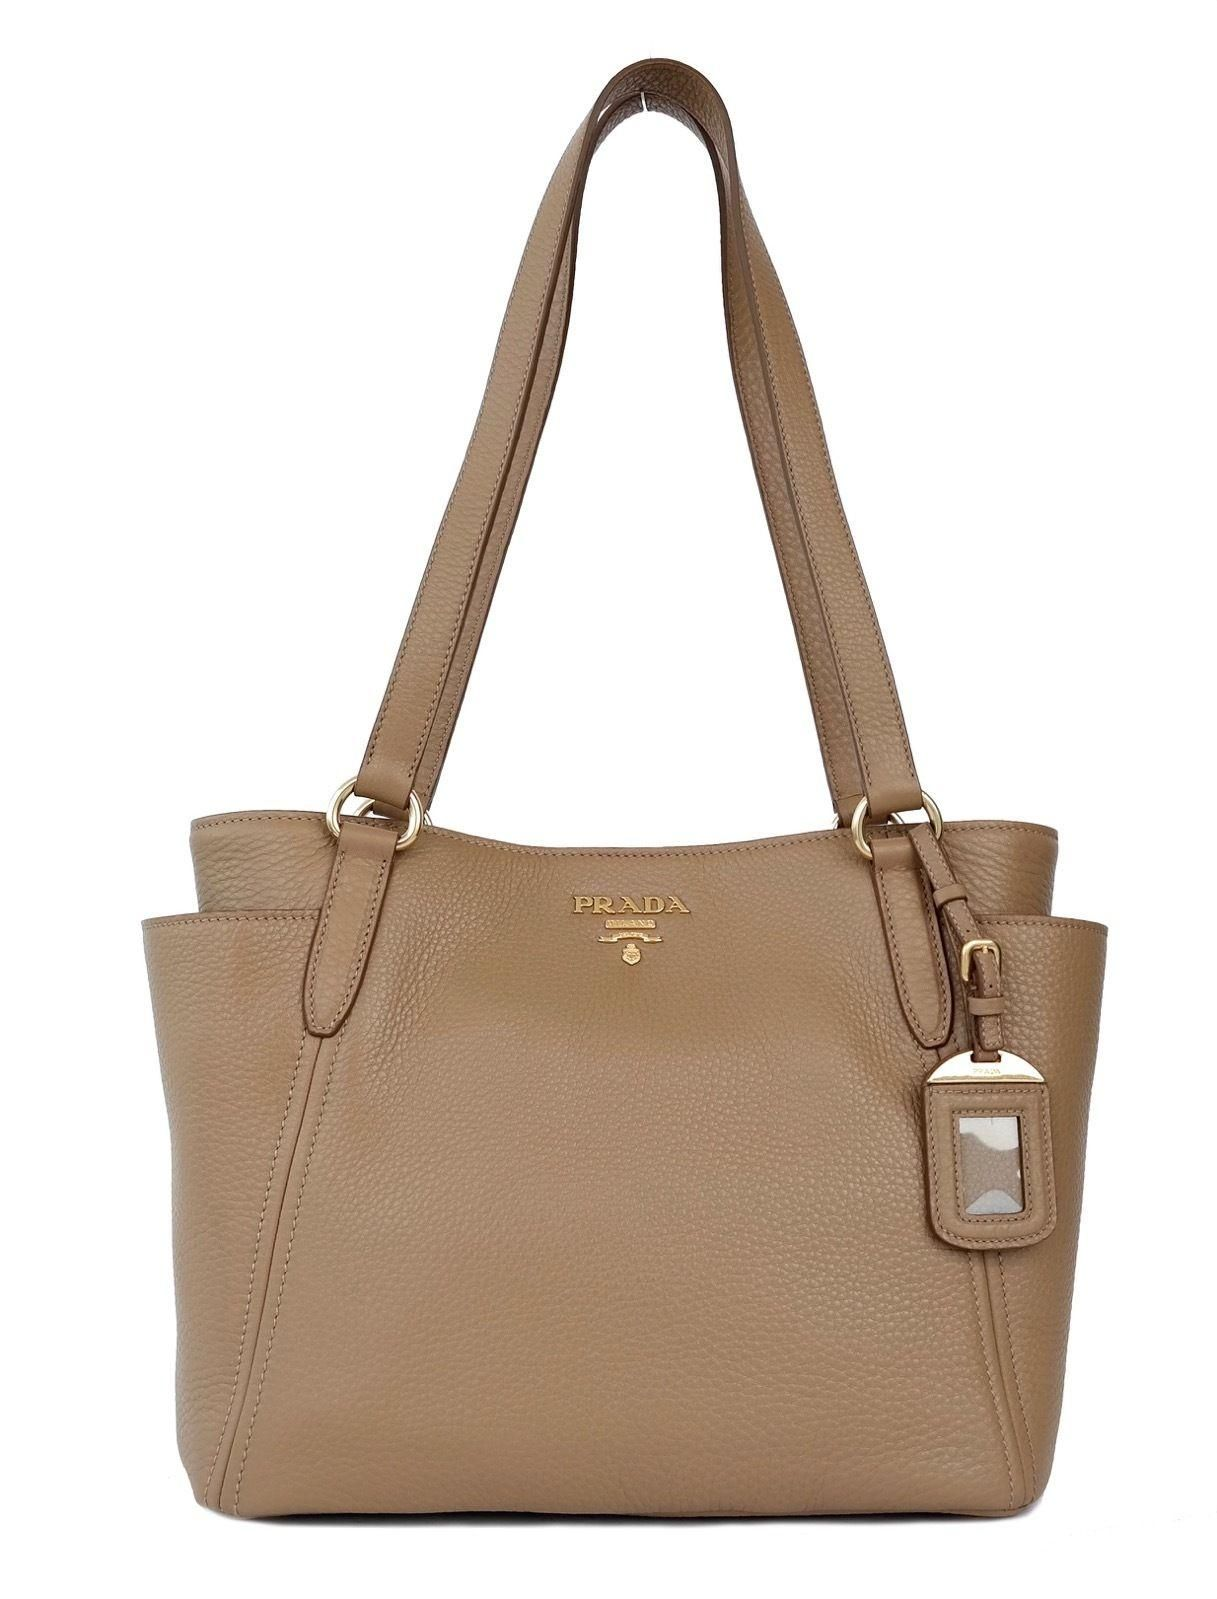 88be0d950813 Get one of the hottest styles of the season! The Prada Tote Satchel Leather  Side Pocket Shoulder Bag is a top 10 member favorite on Tradesy.